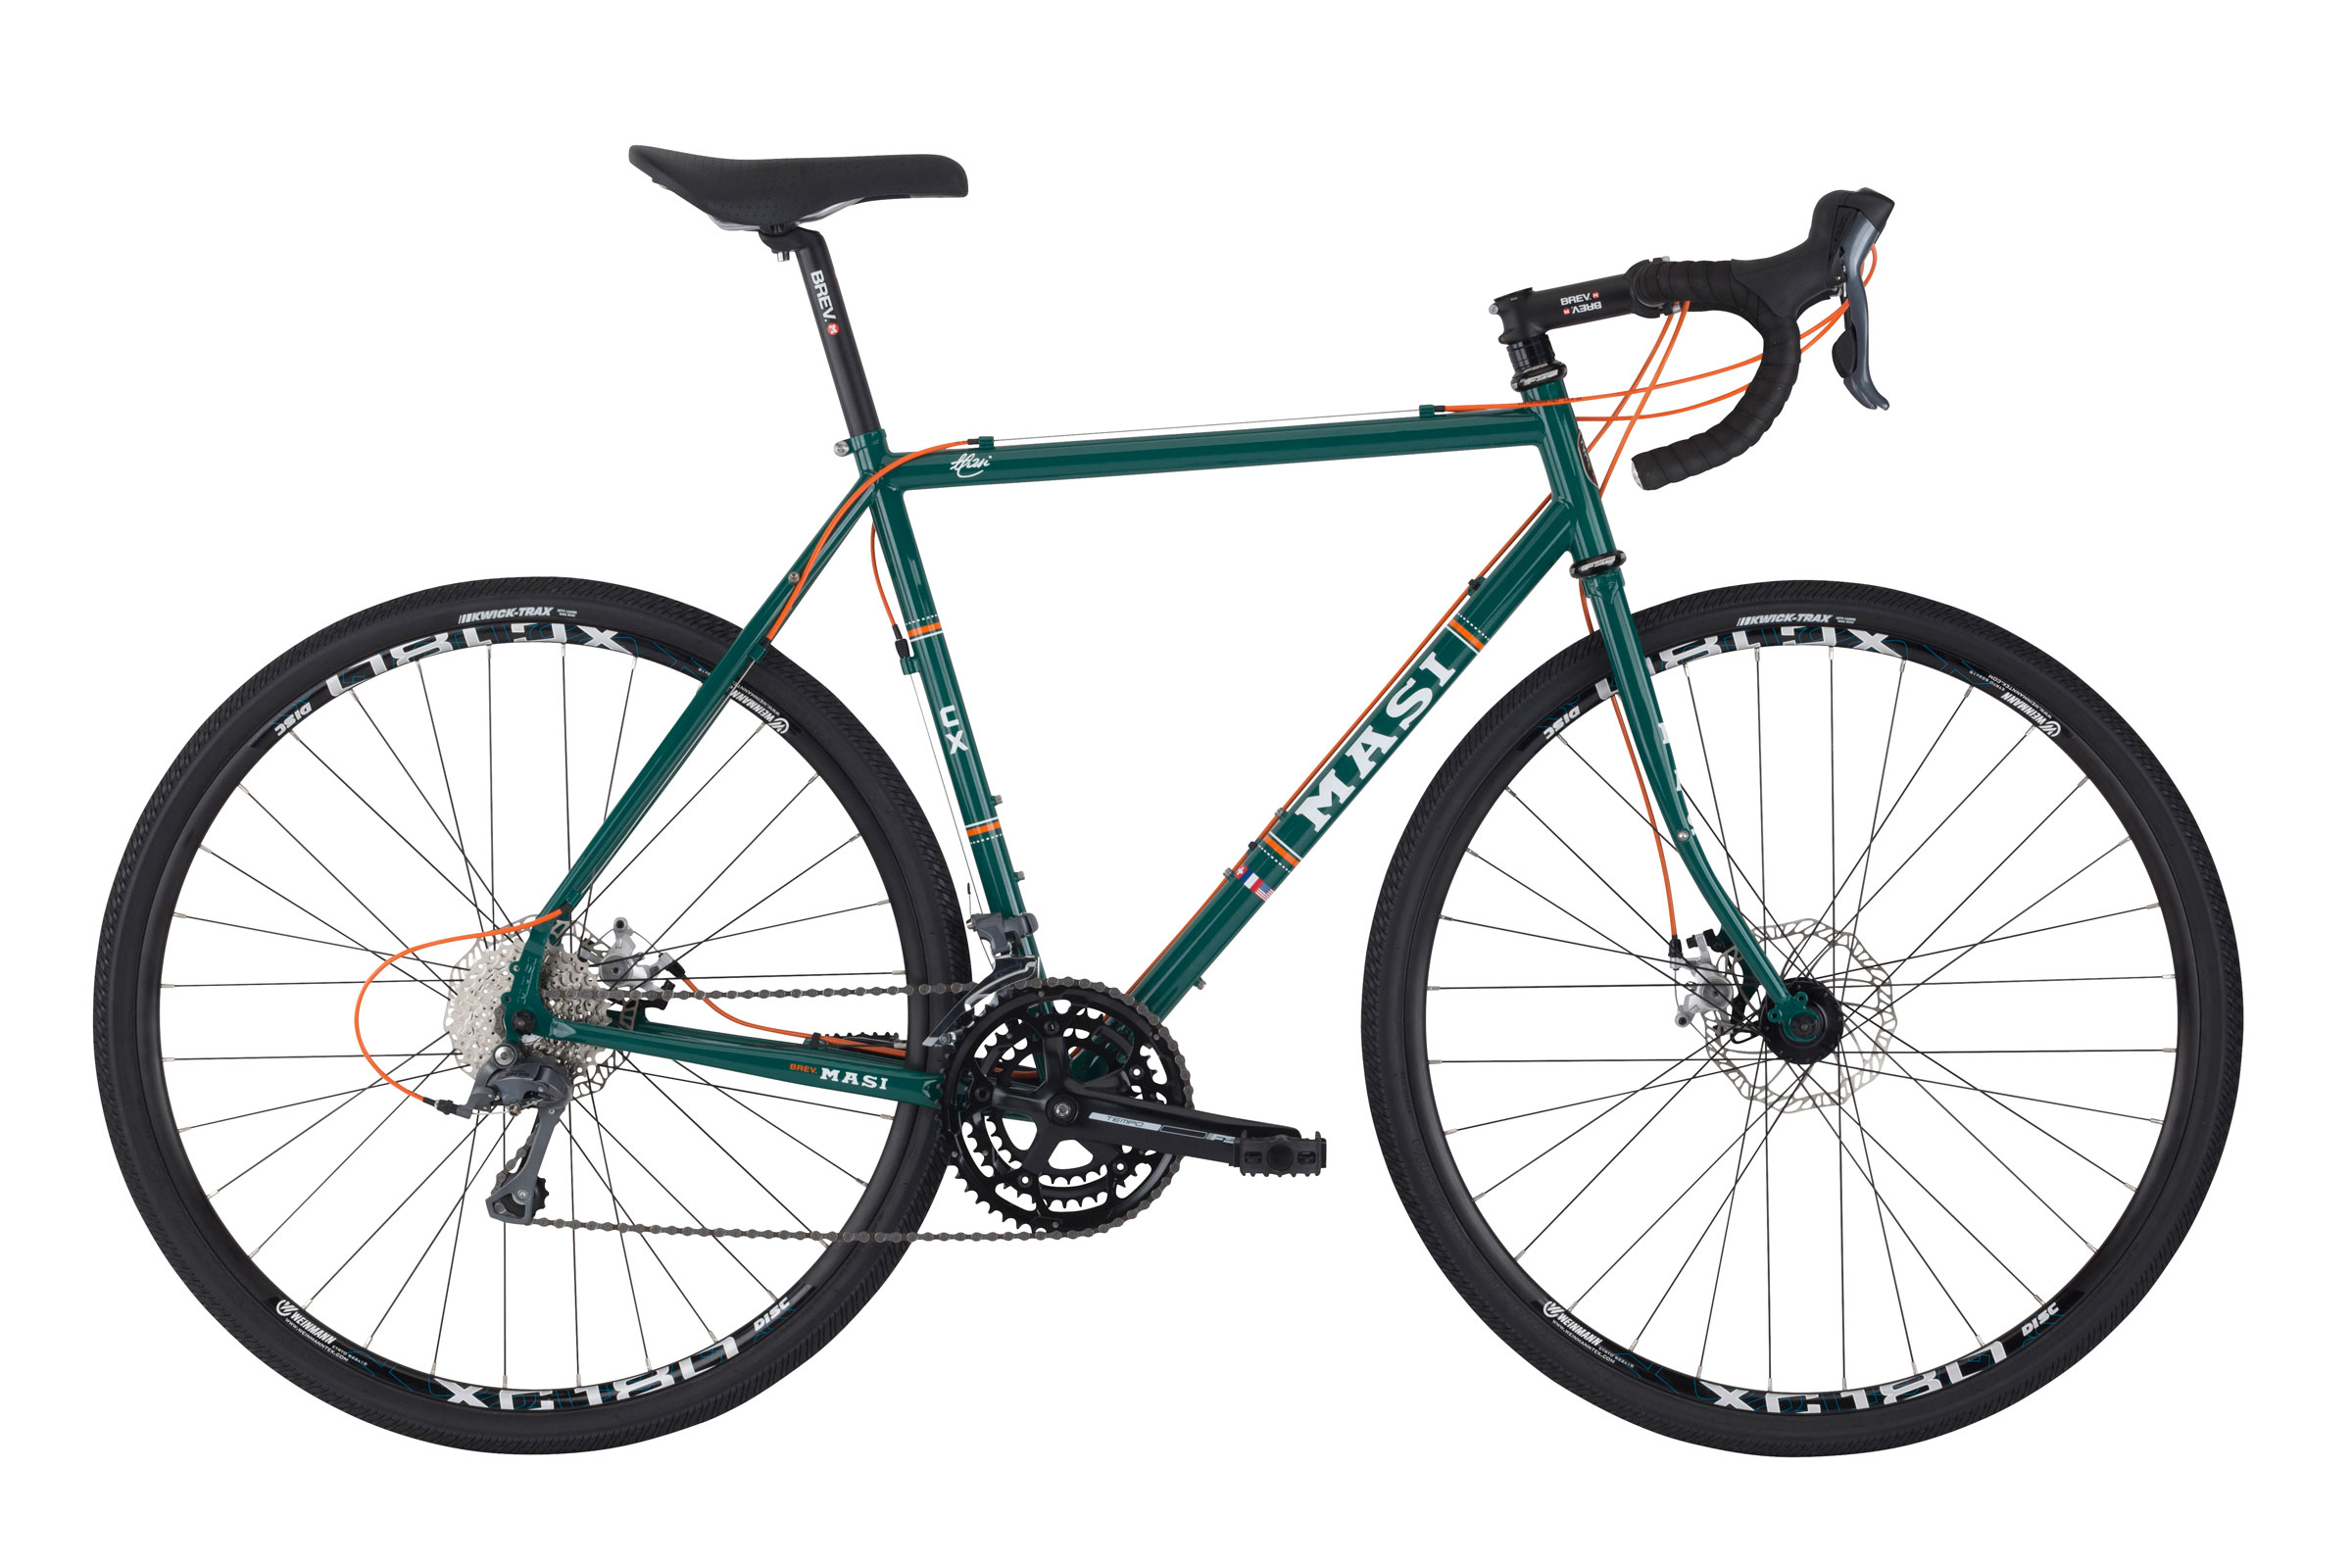 Masi CX - Sale Price $829.99 (Regular Price $939.99)Steel frame and fork, Shimano Claris 3 x 8 speed shifting, eyelets for front and rear racks, 700 x 38c tires.Available Sizes: 49cm, 53cm